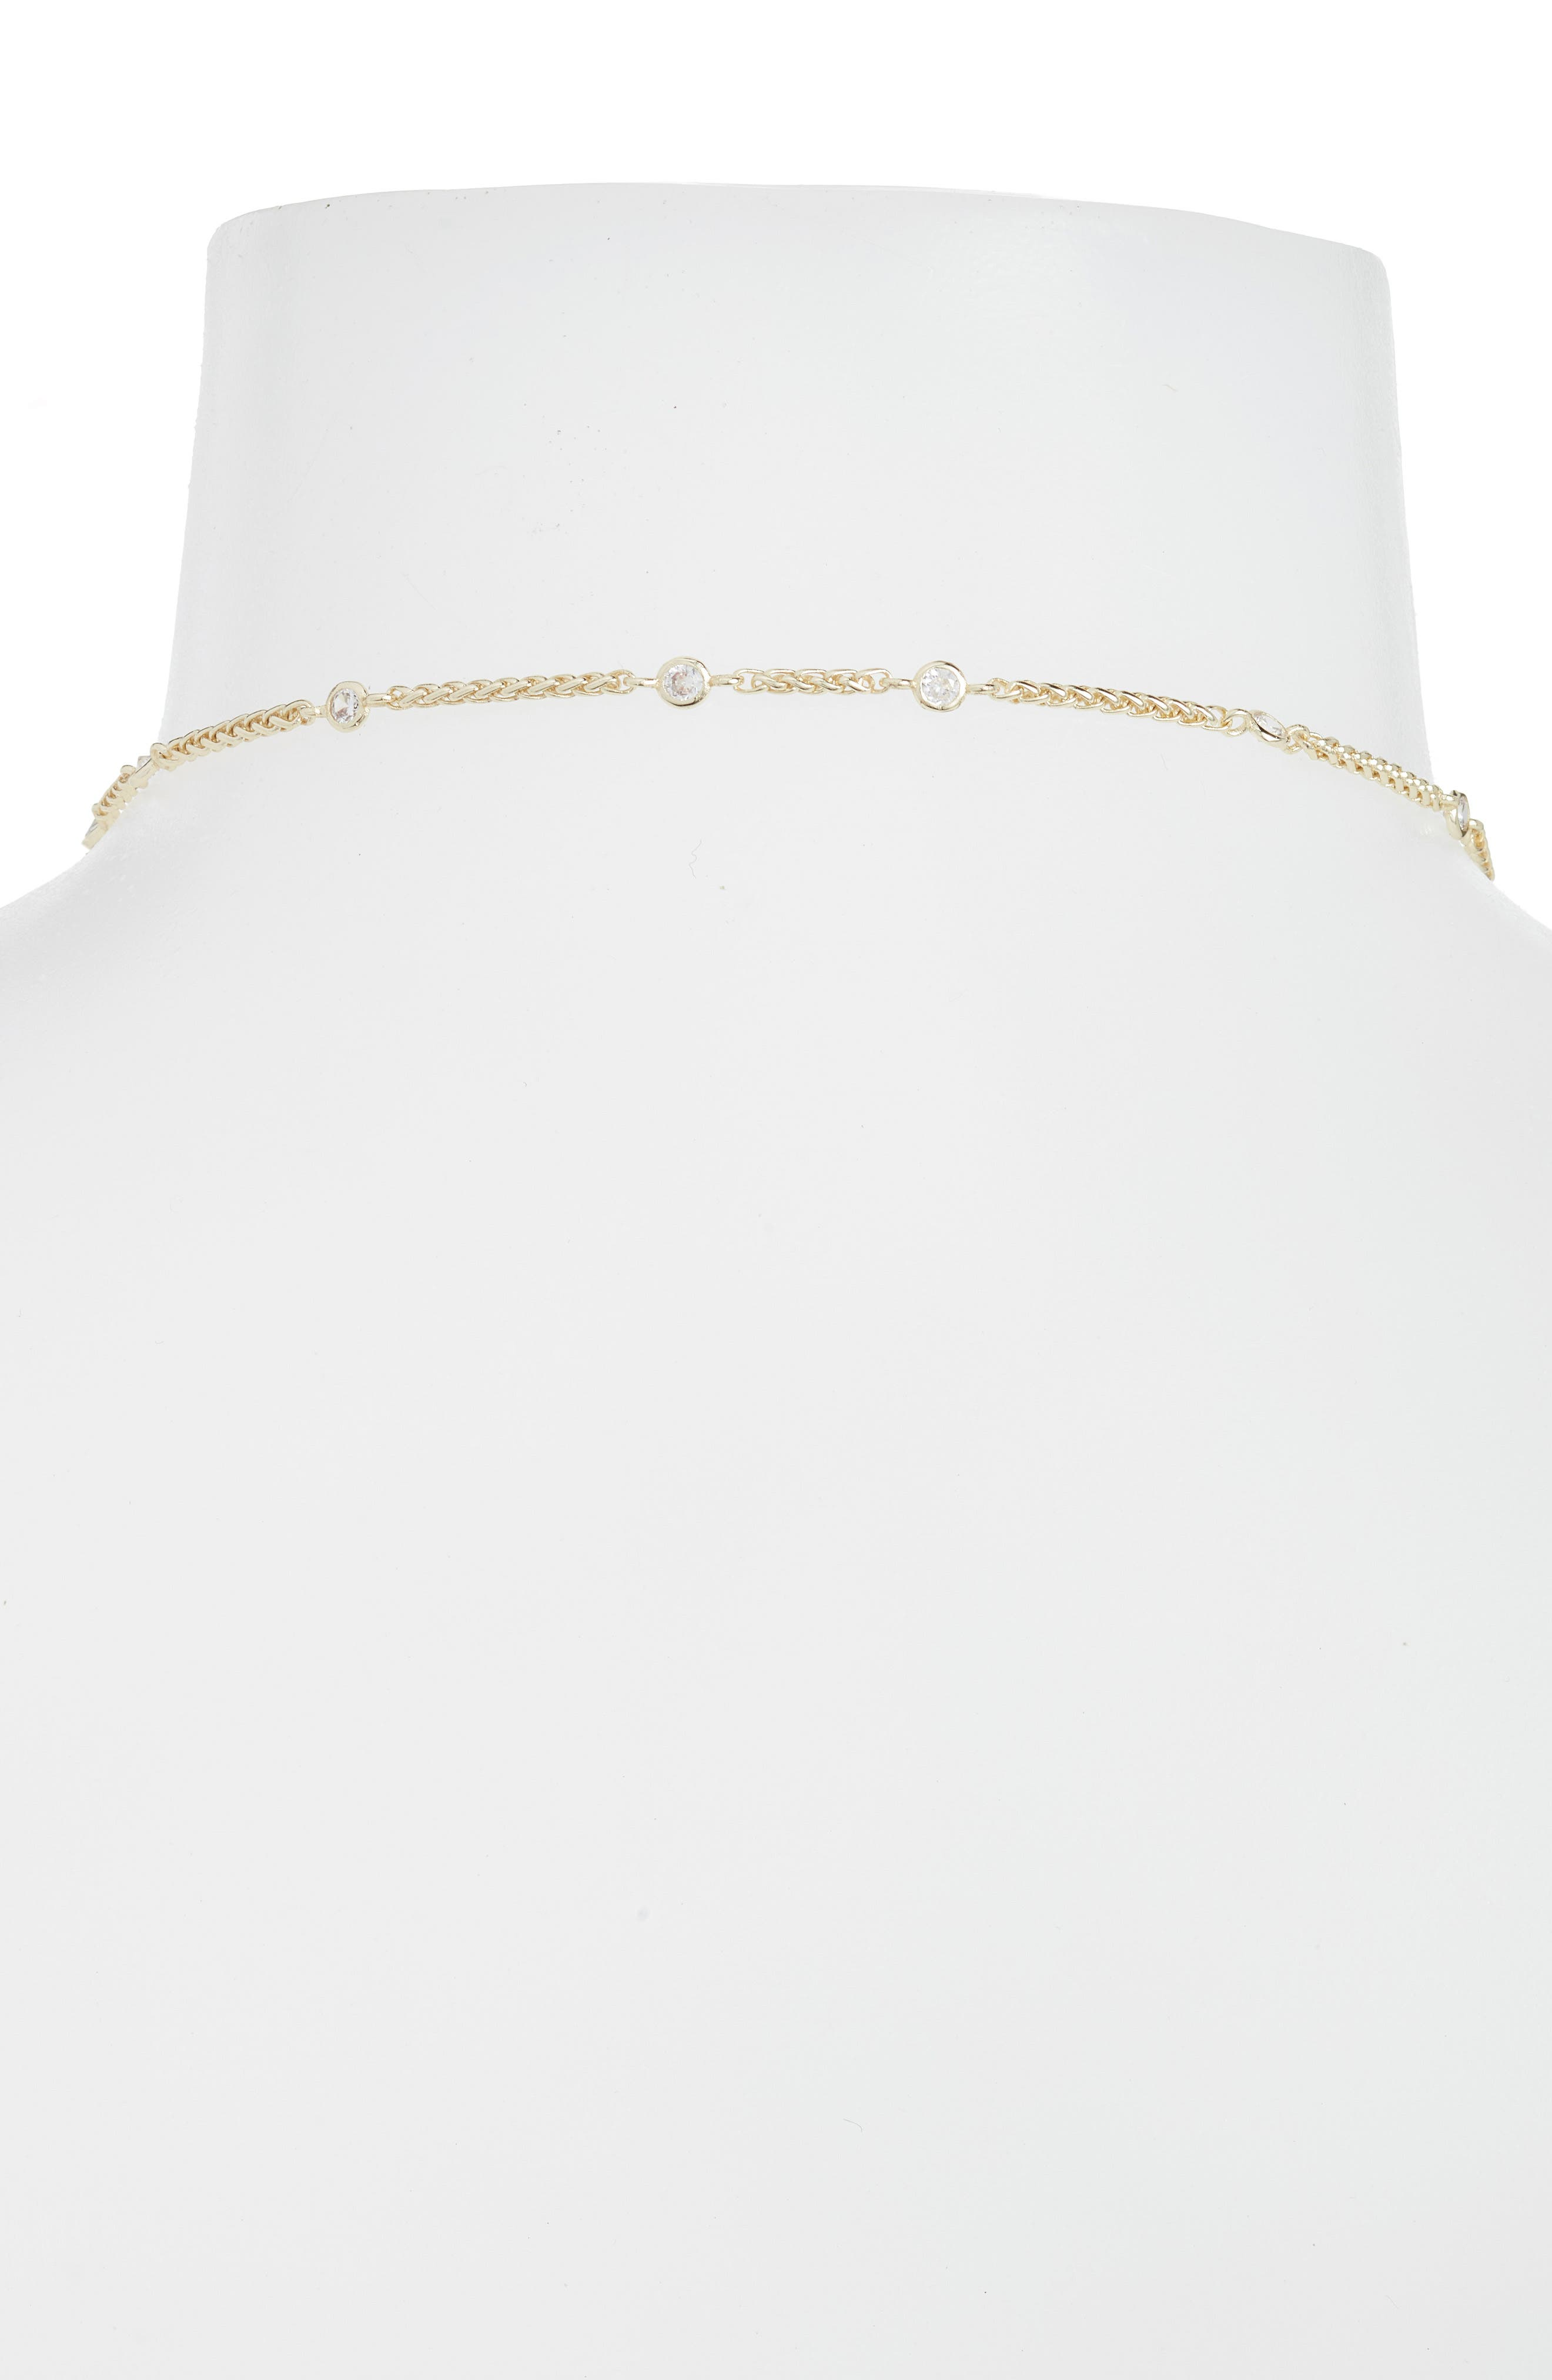 Sivan Lariat Necklace,                             Alternate thumbnail 6, color,